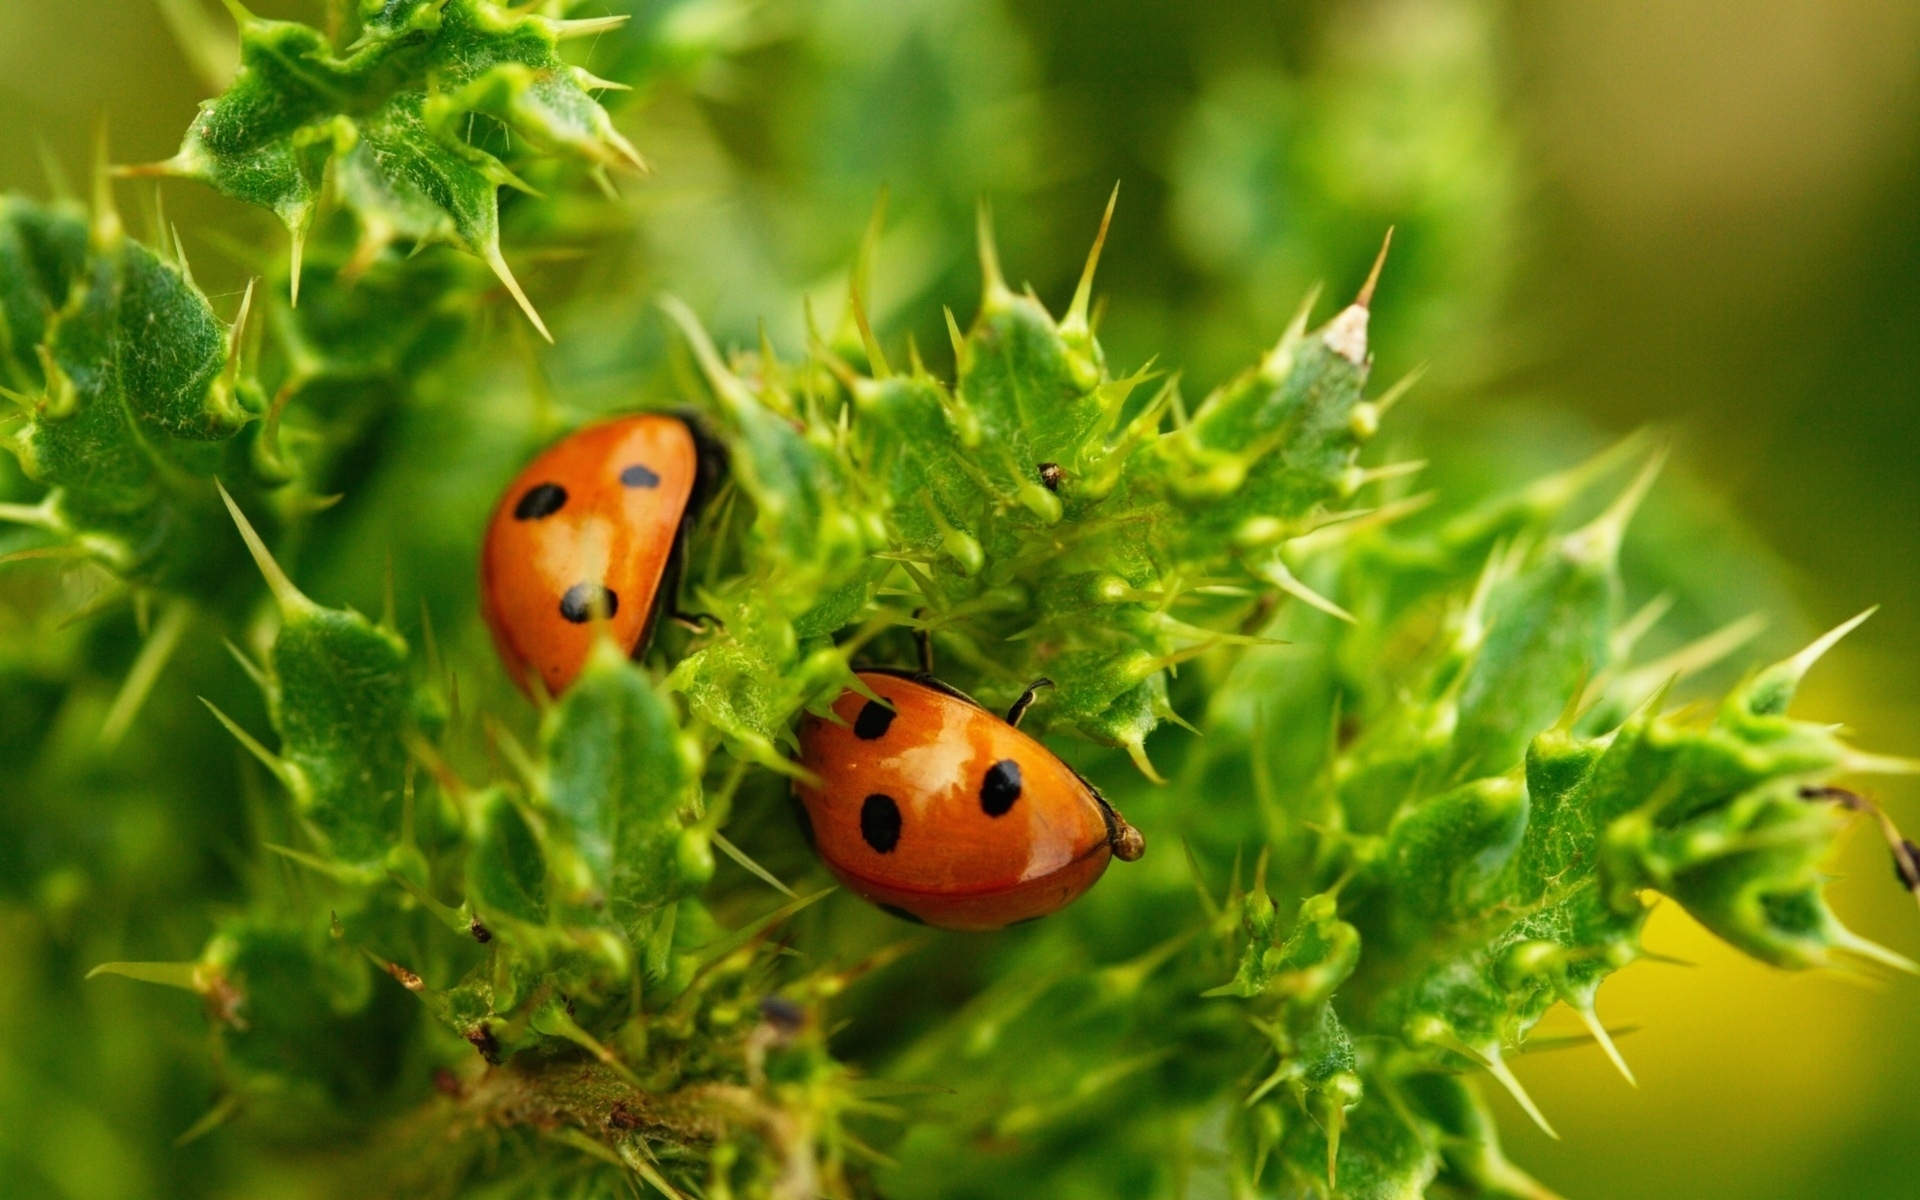 27847 download wallpaper Insects, Ladybugs screensavers and pictures for free